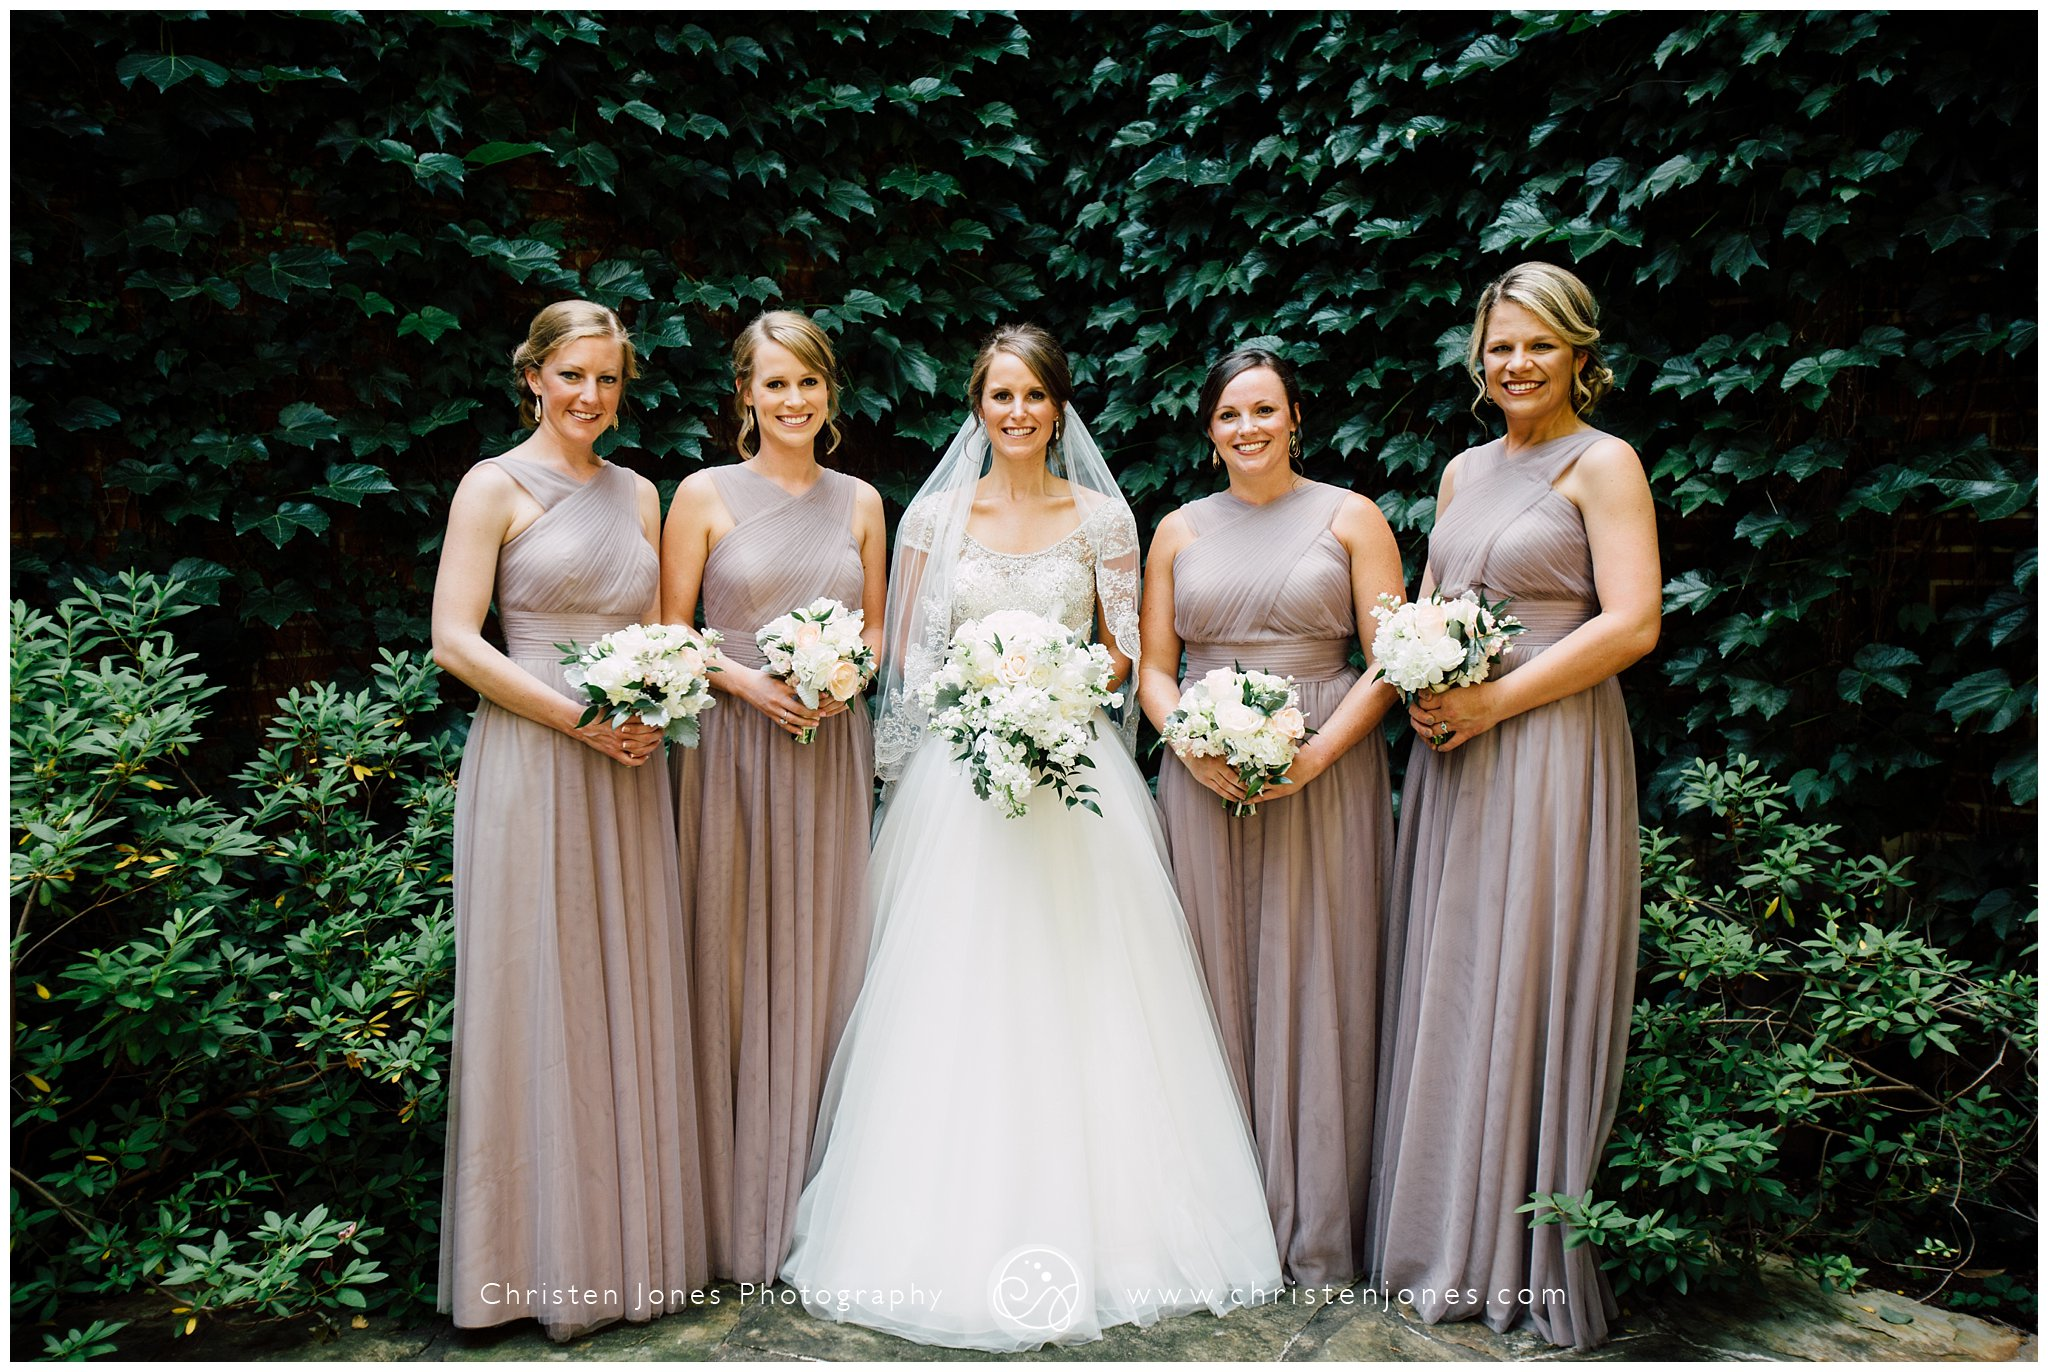 Elizabeth daniels wedding at hope church and the memphis zoo bridesmaid dresses ballew bridal junglespirit Image collections